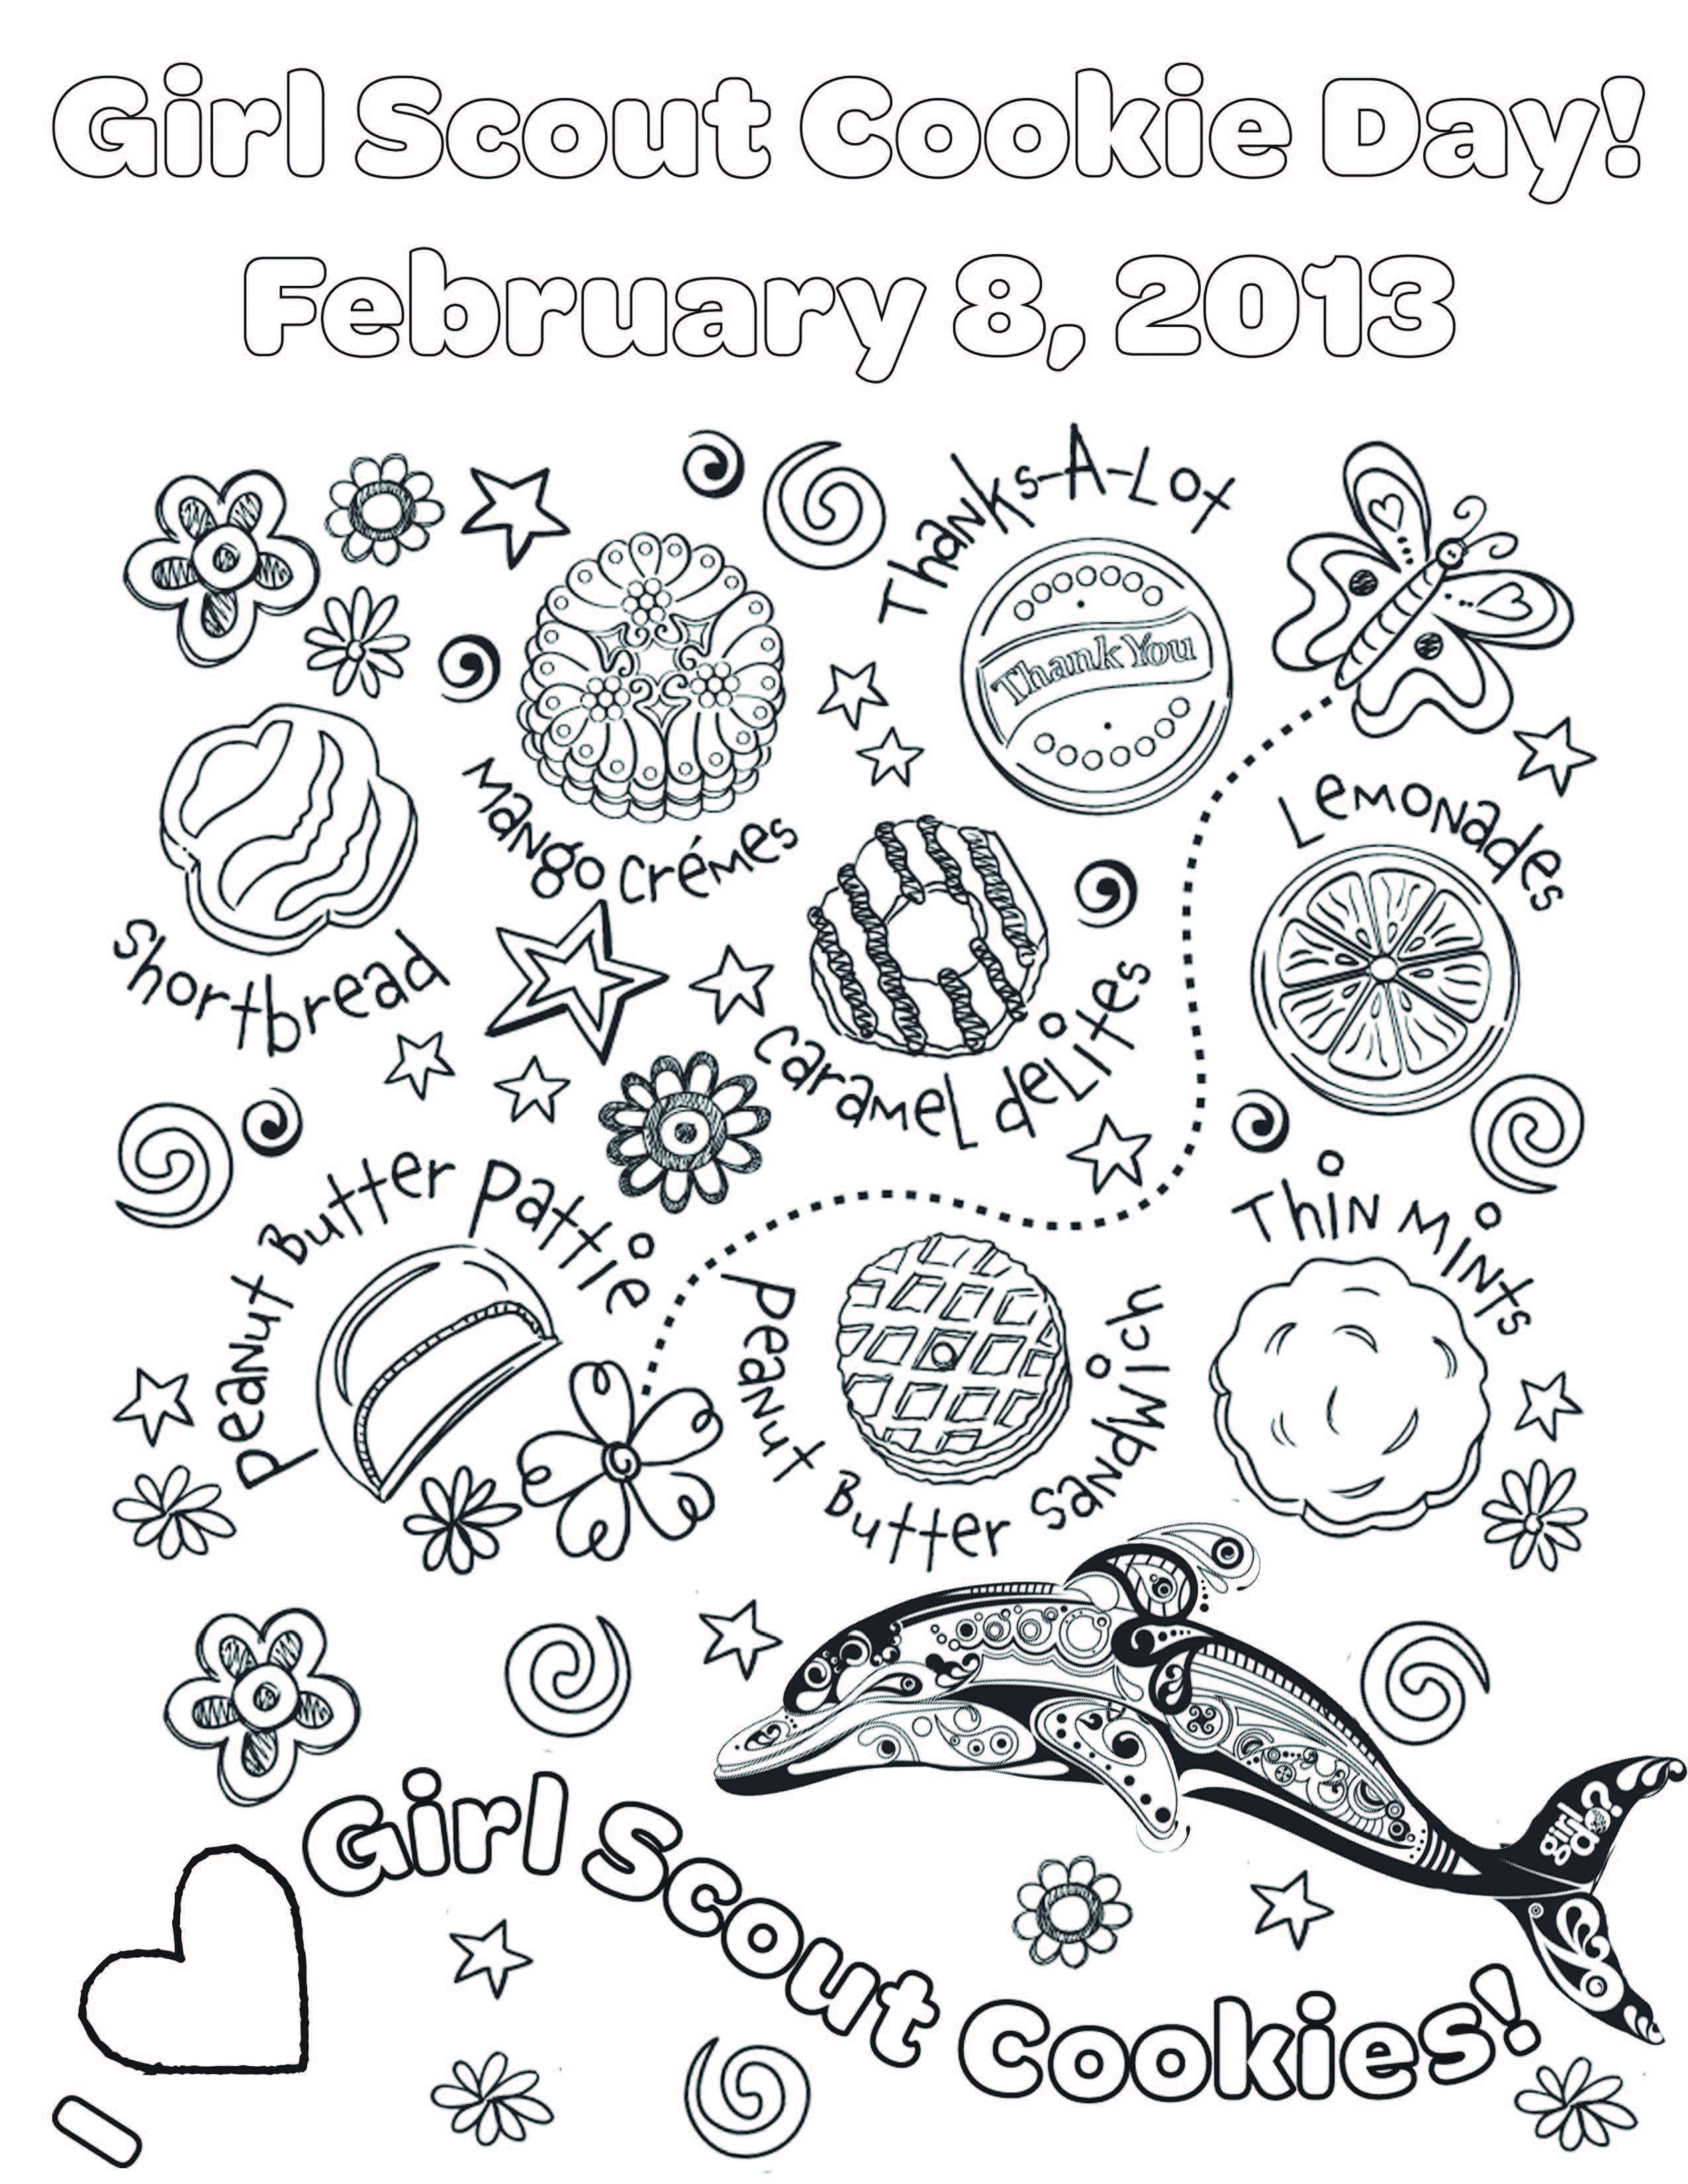 National Girl Scout Cookie Day On Feb 8th